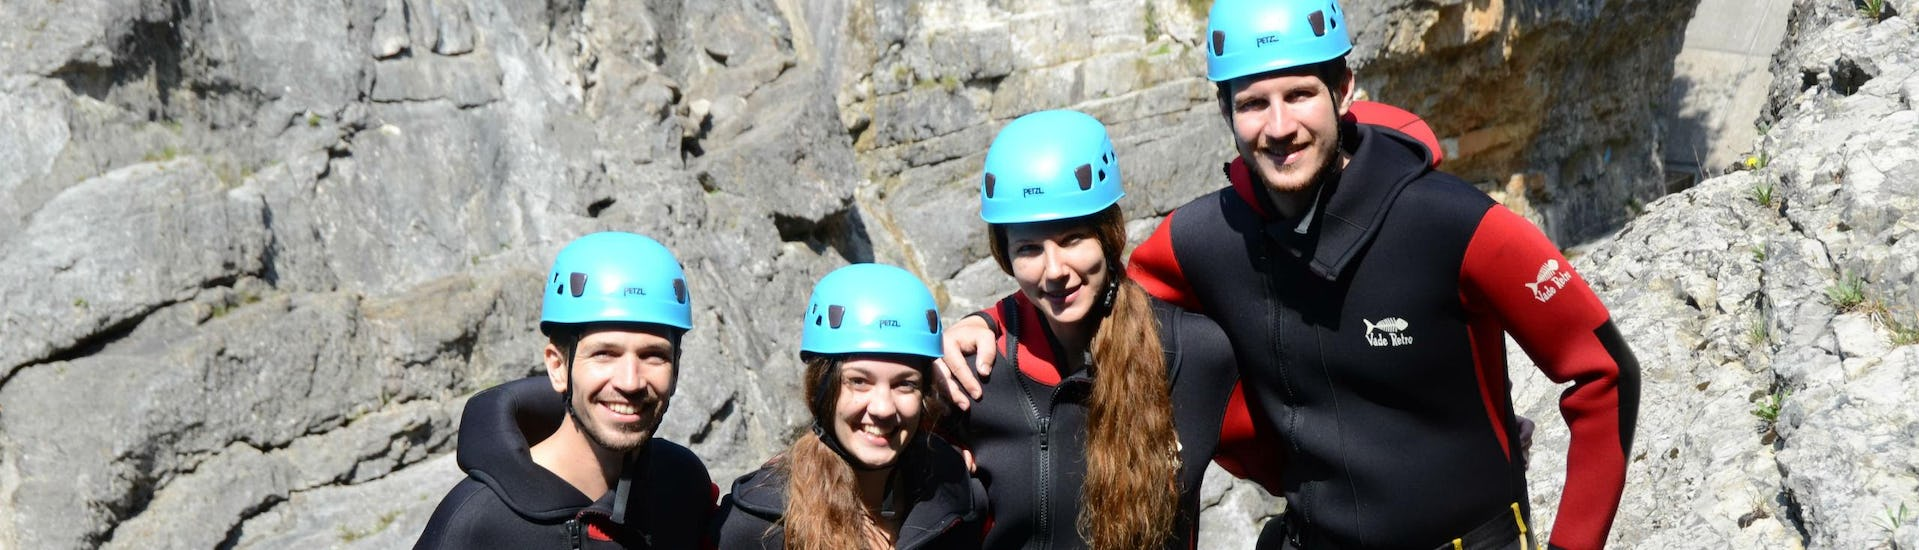 A group of friends is posing for a group photo while on a canyoning tour.